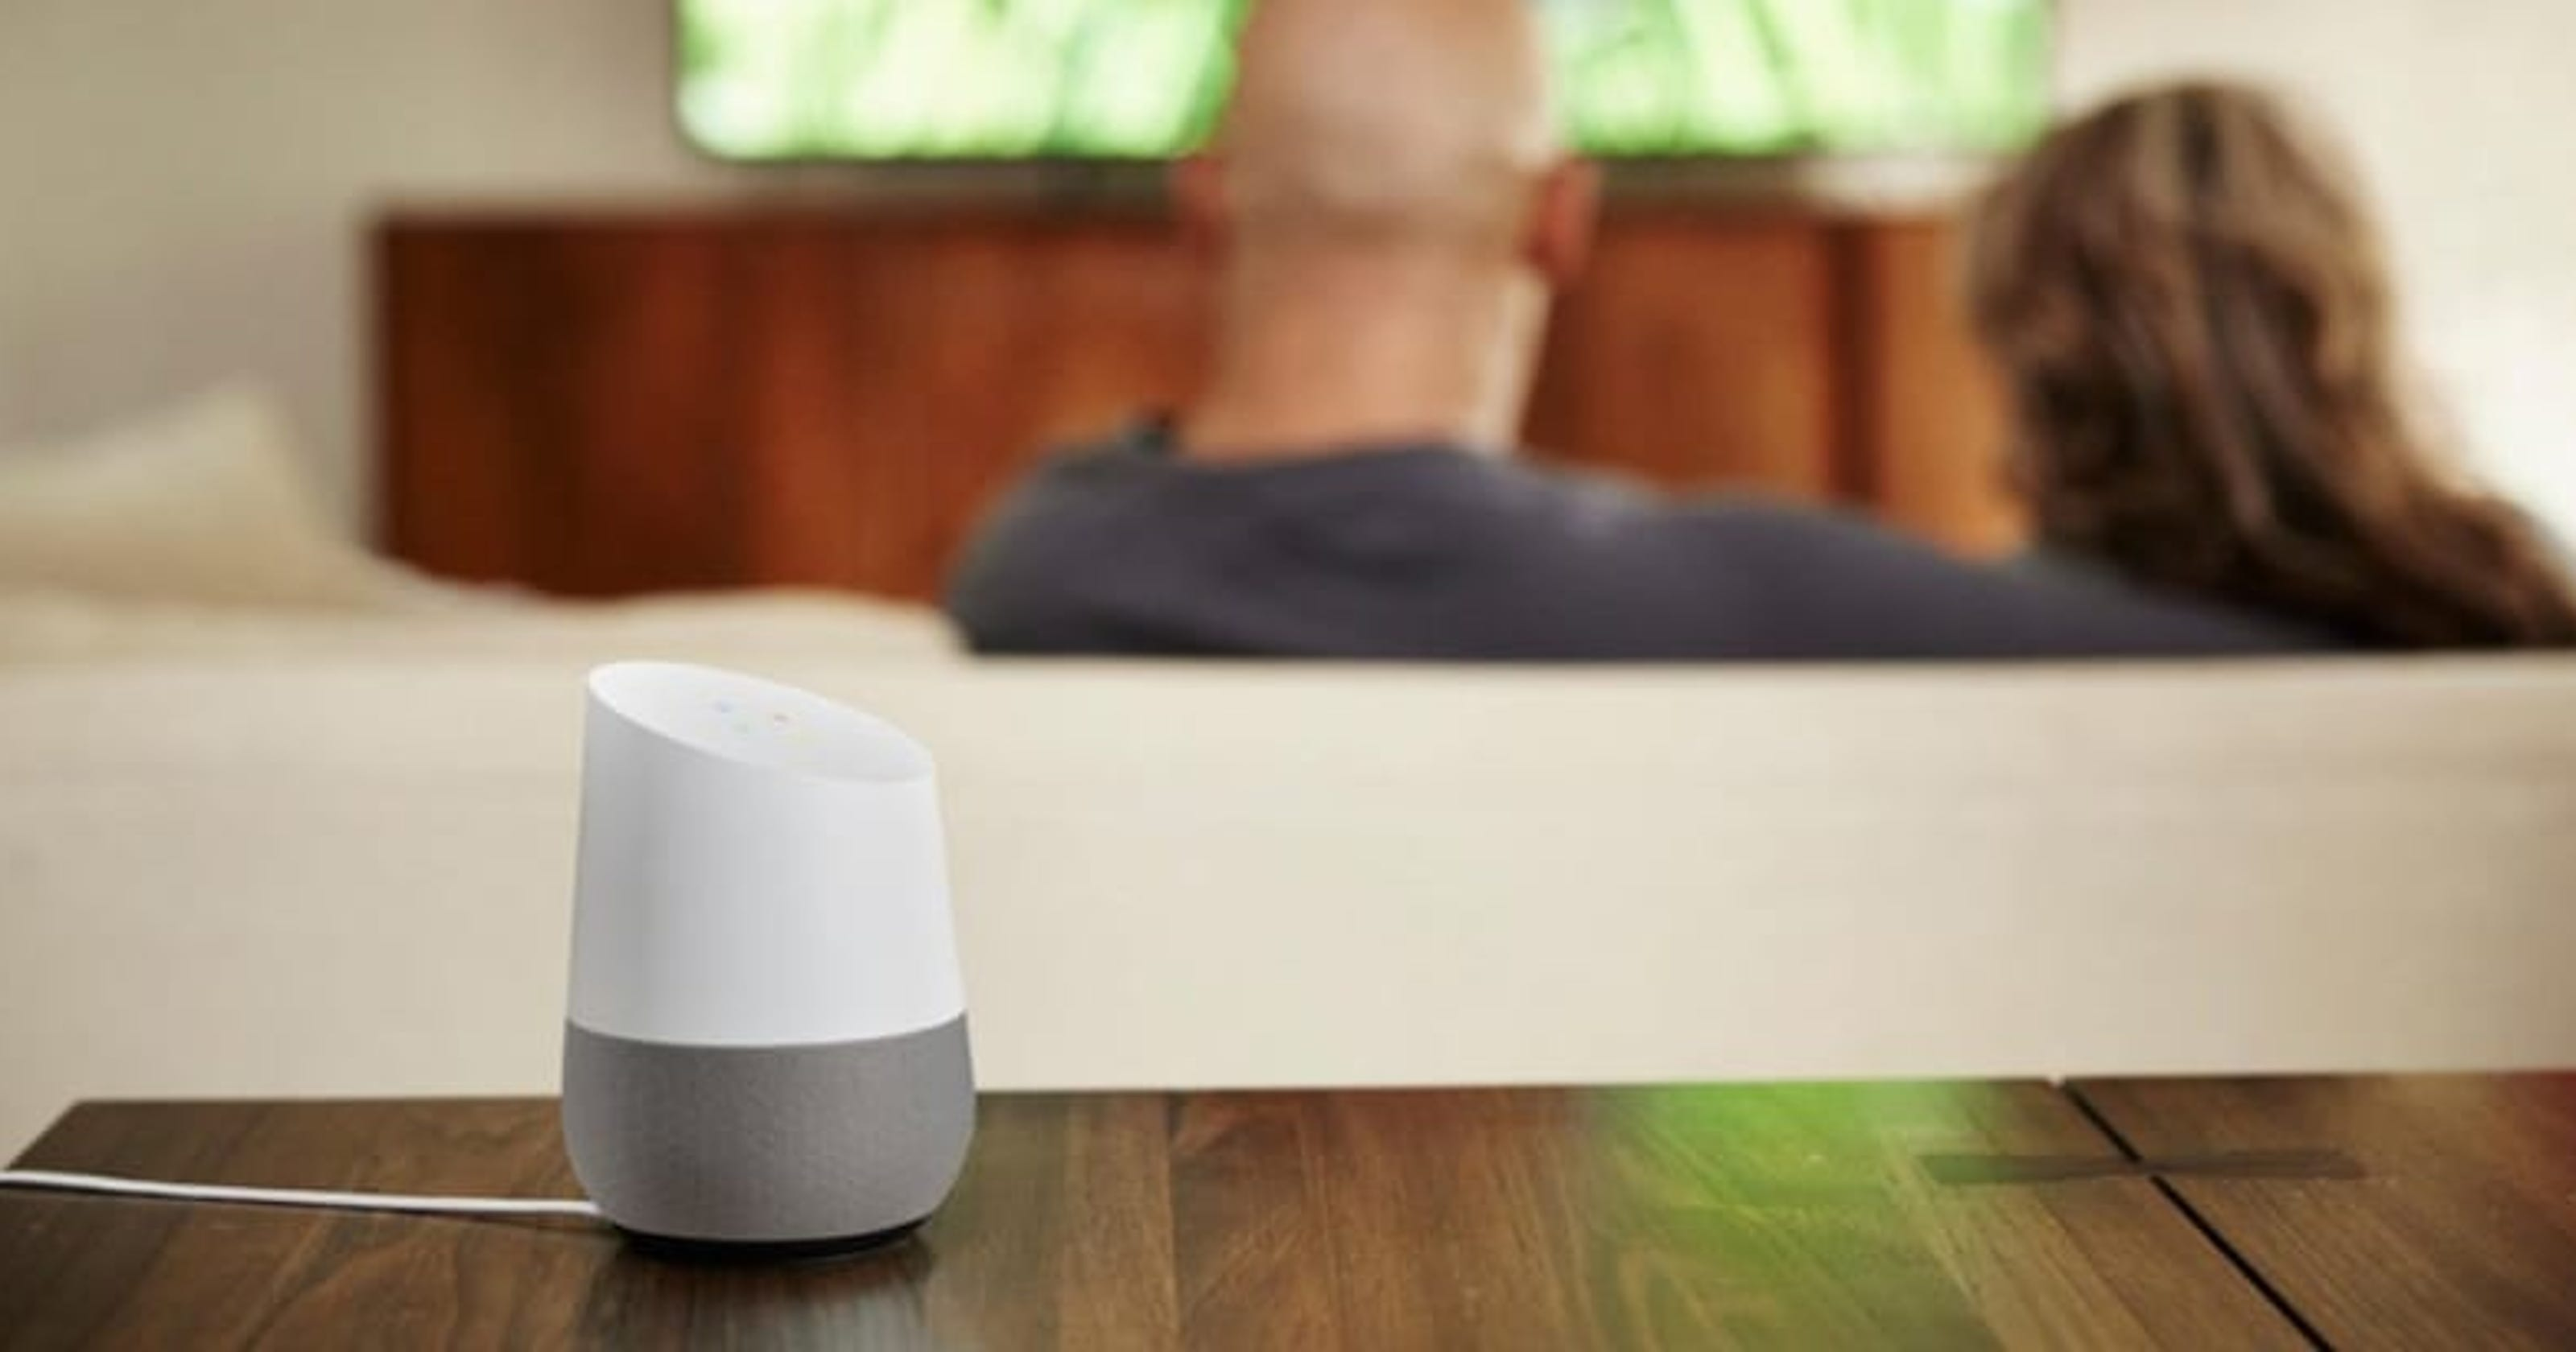 Google Lets You Move Music Between Smart Speakers In Your Home